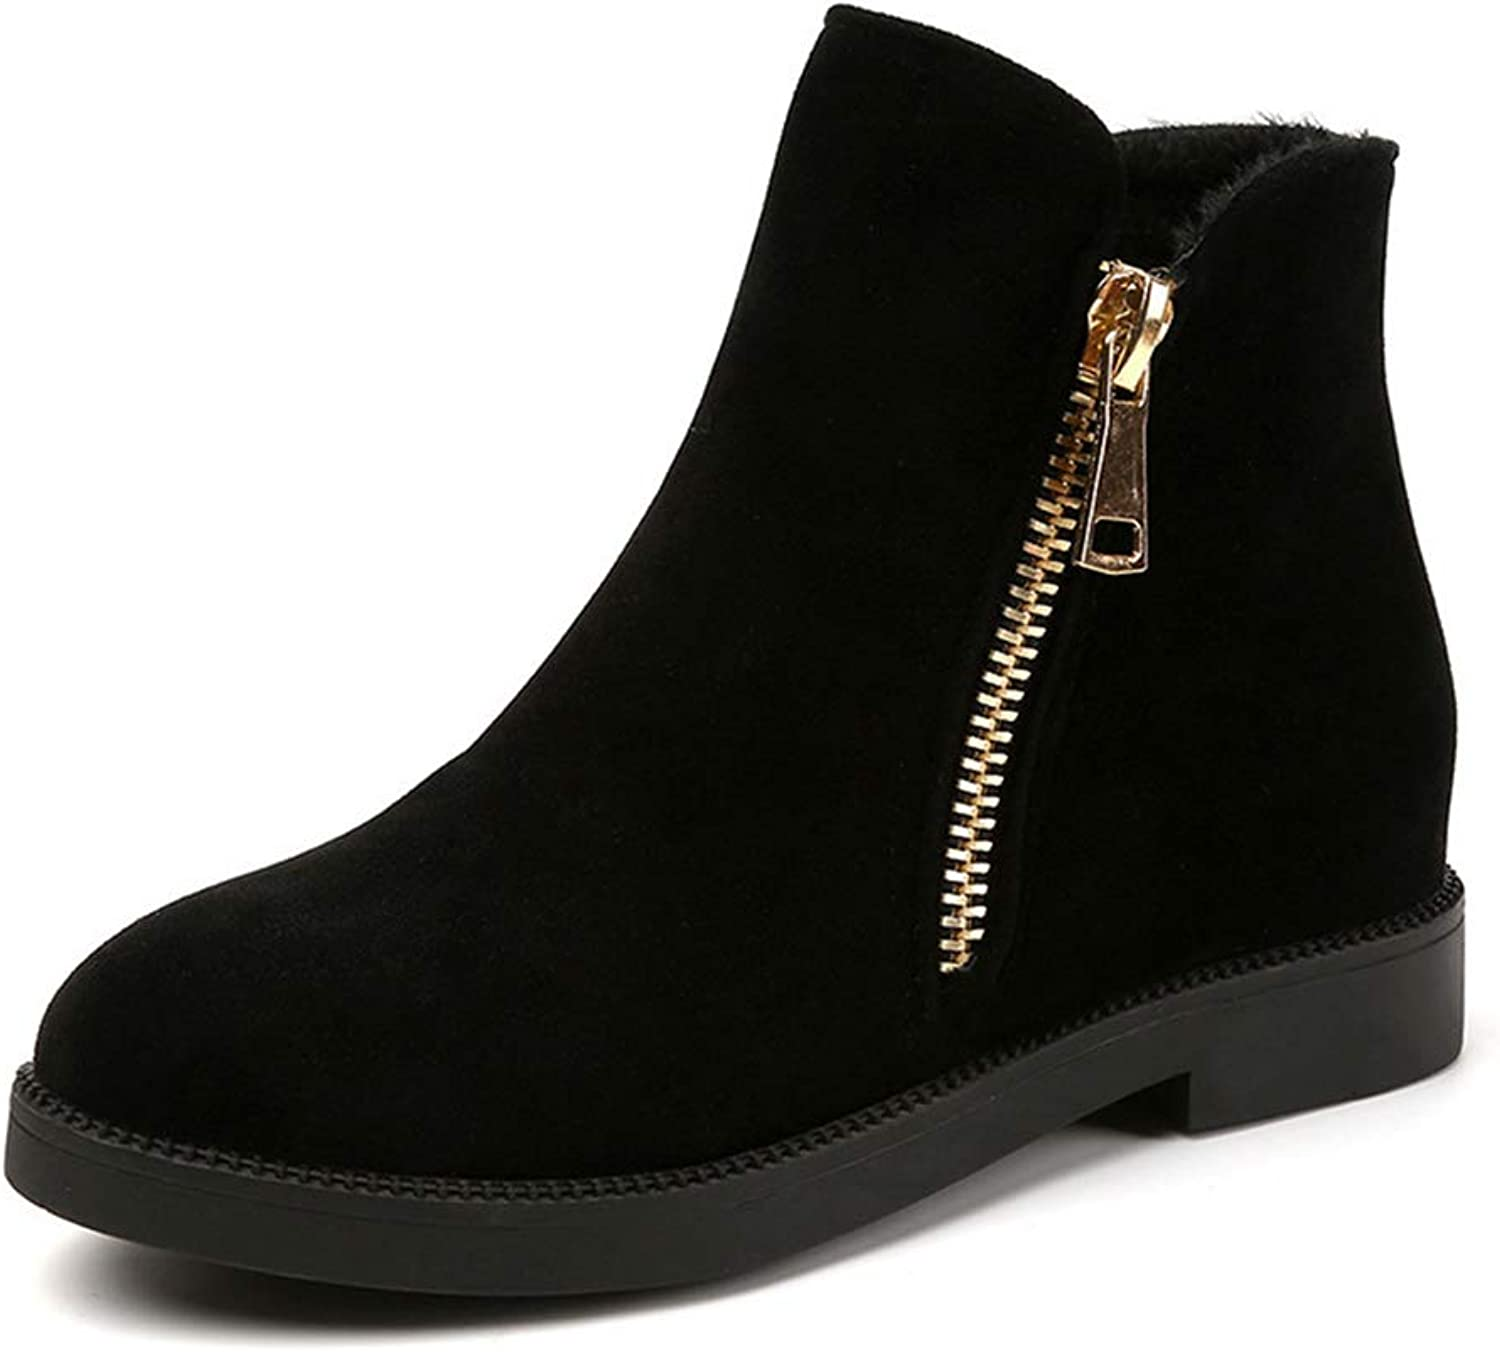 T-JULY Boots shoes Ankle Boots Women Autumn Winter Boots Round Toe Girls shoes Zipper Fashion